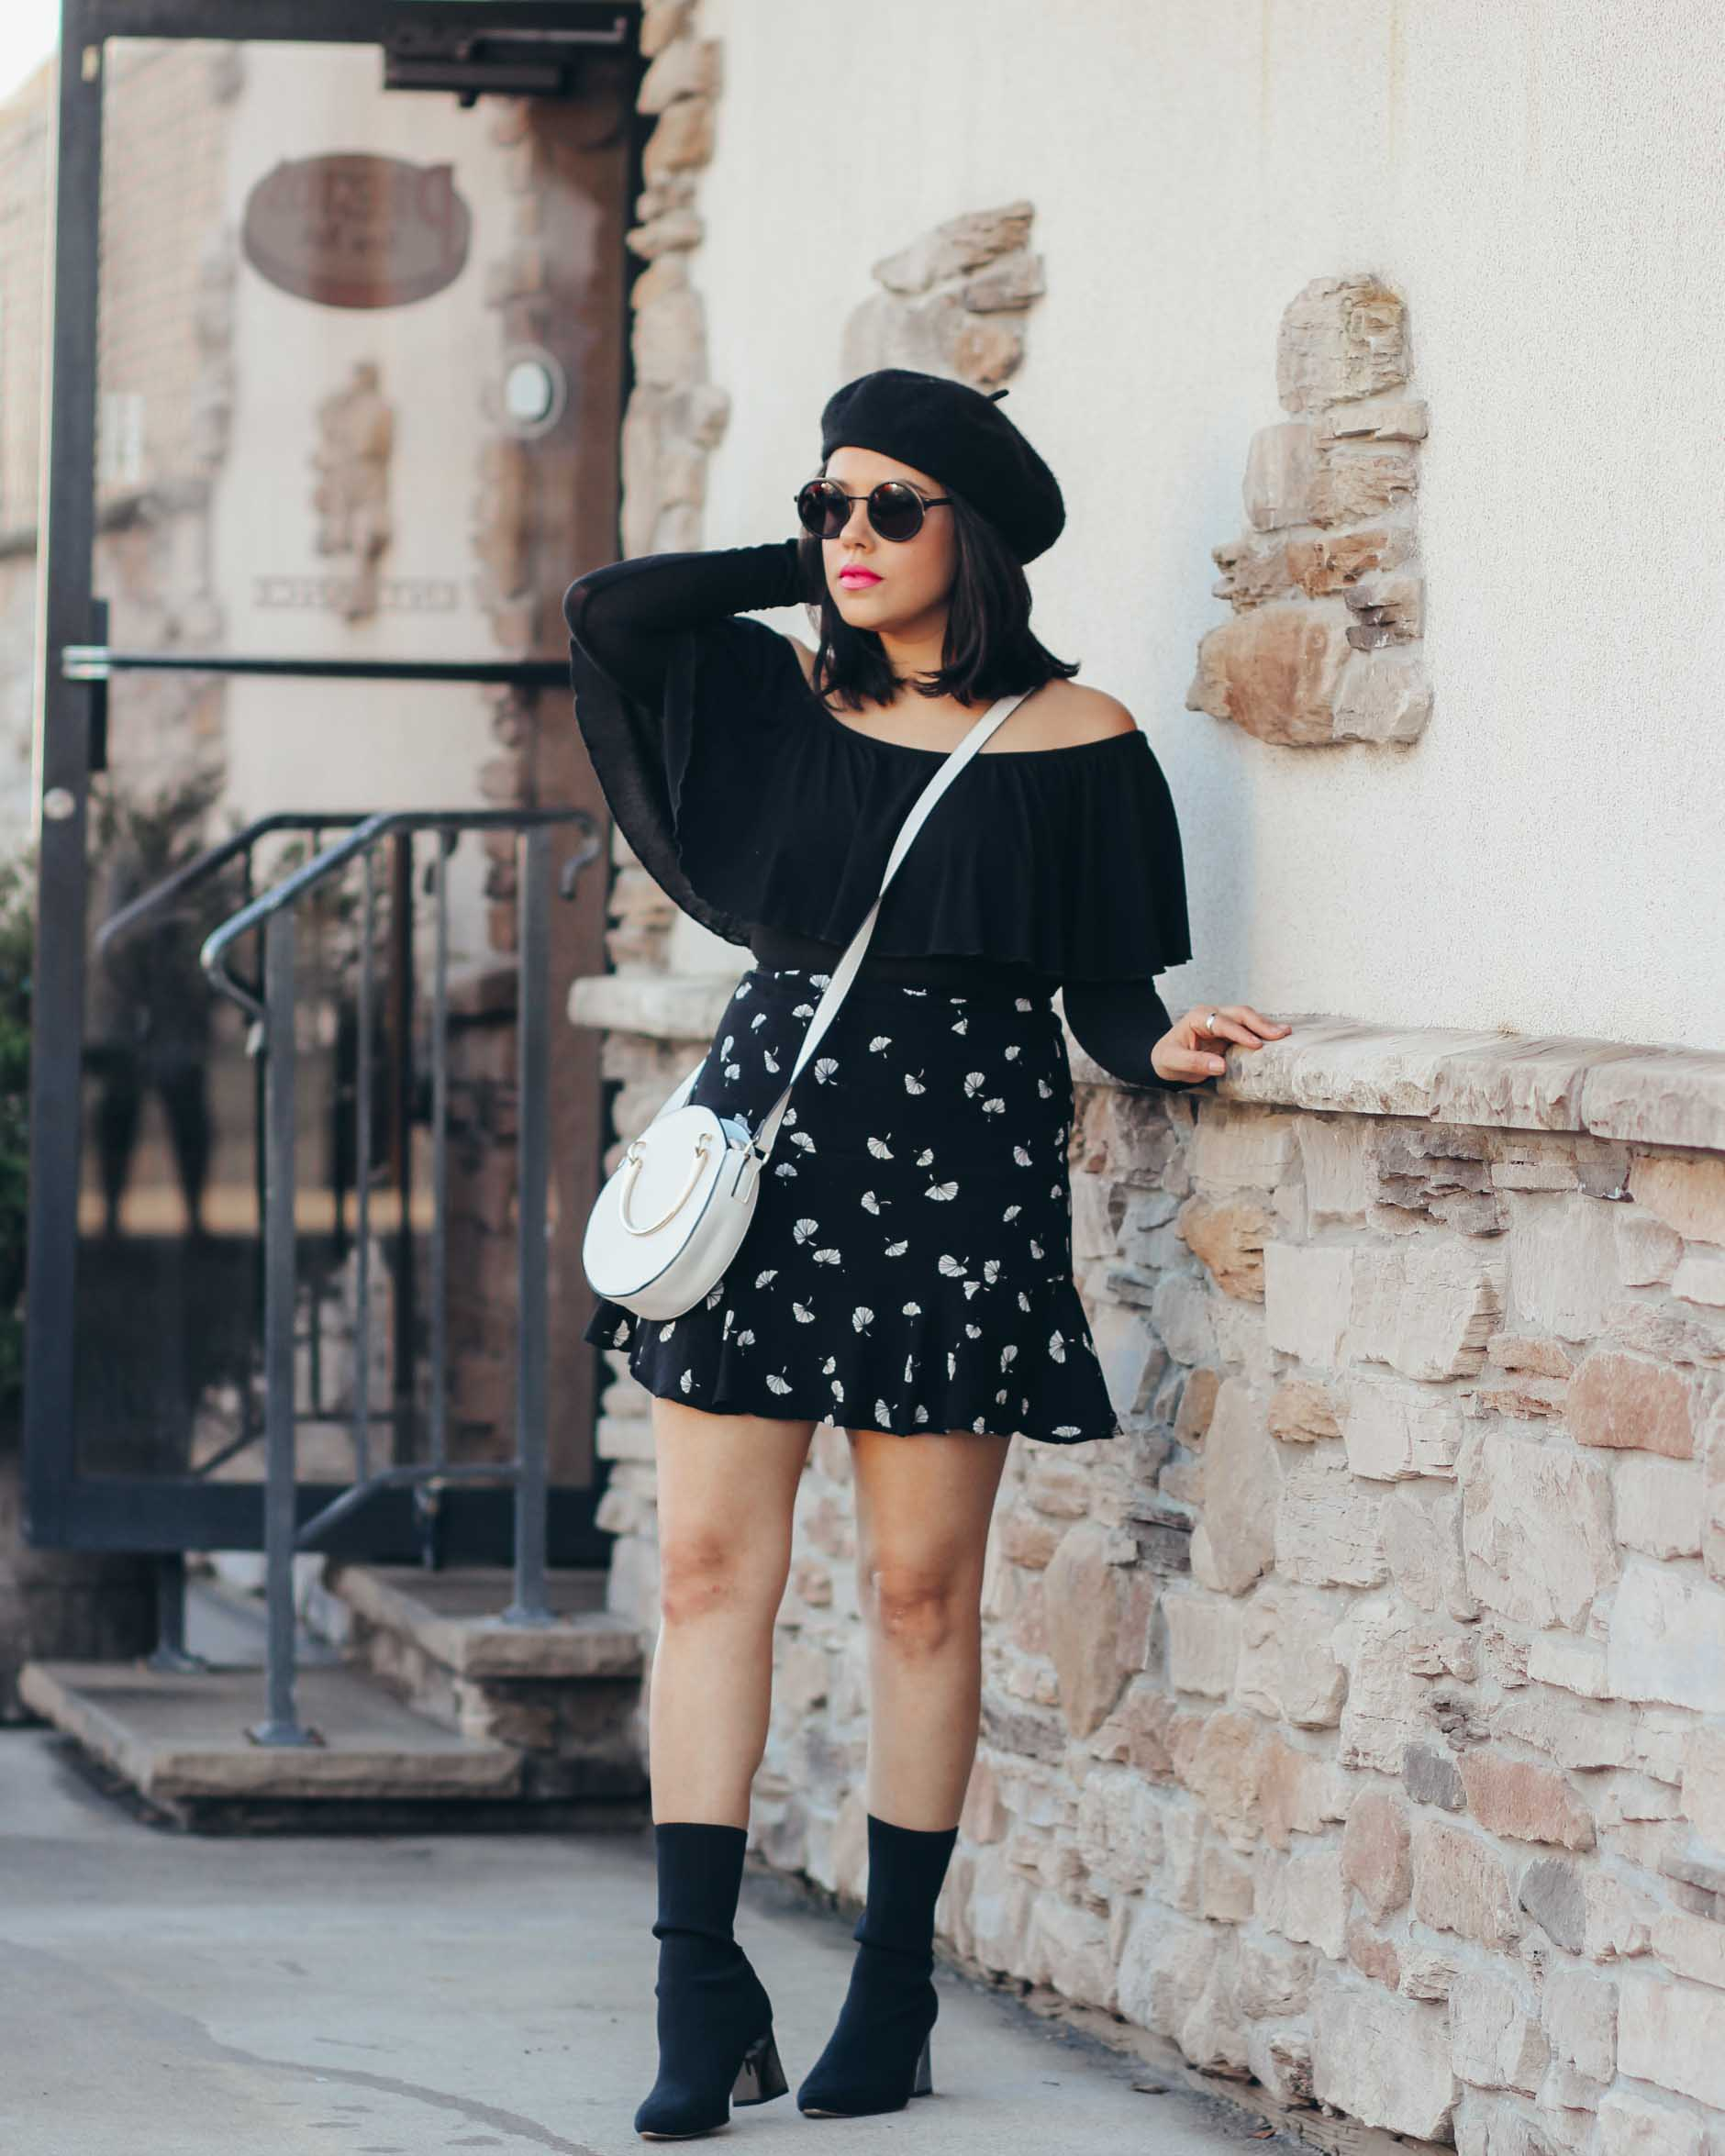 naty michele wearing a parisian style outfit